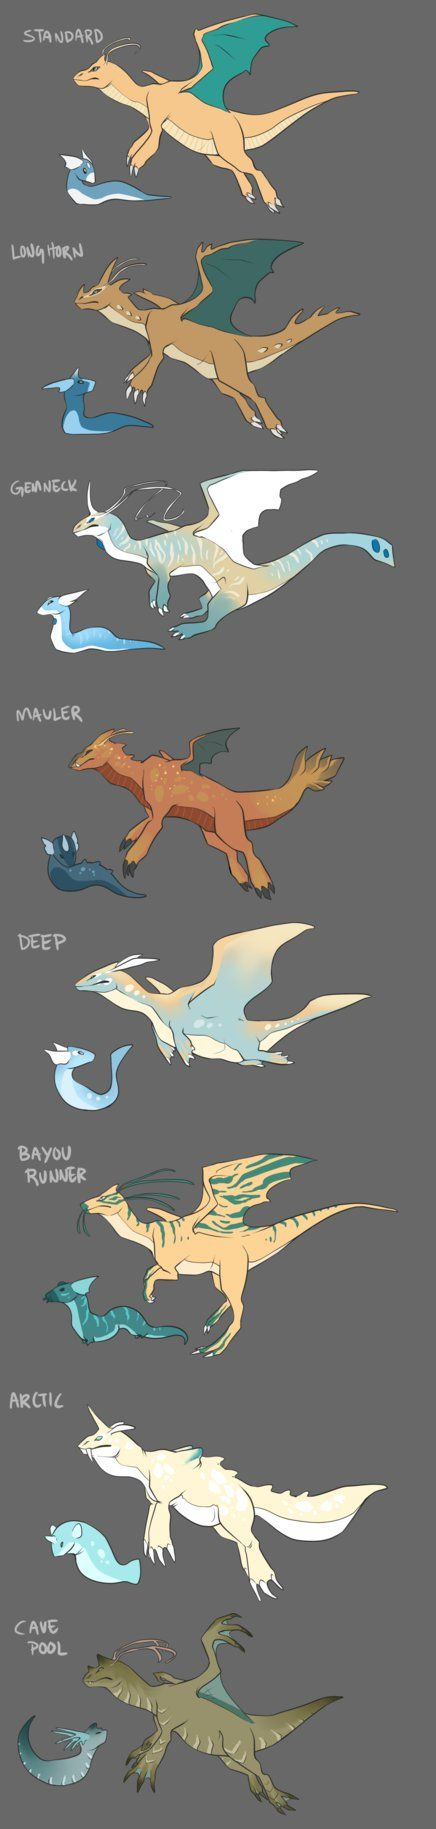 17 Best Images About Pokmon On Pinterest New Pokemon Lugia And